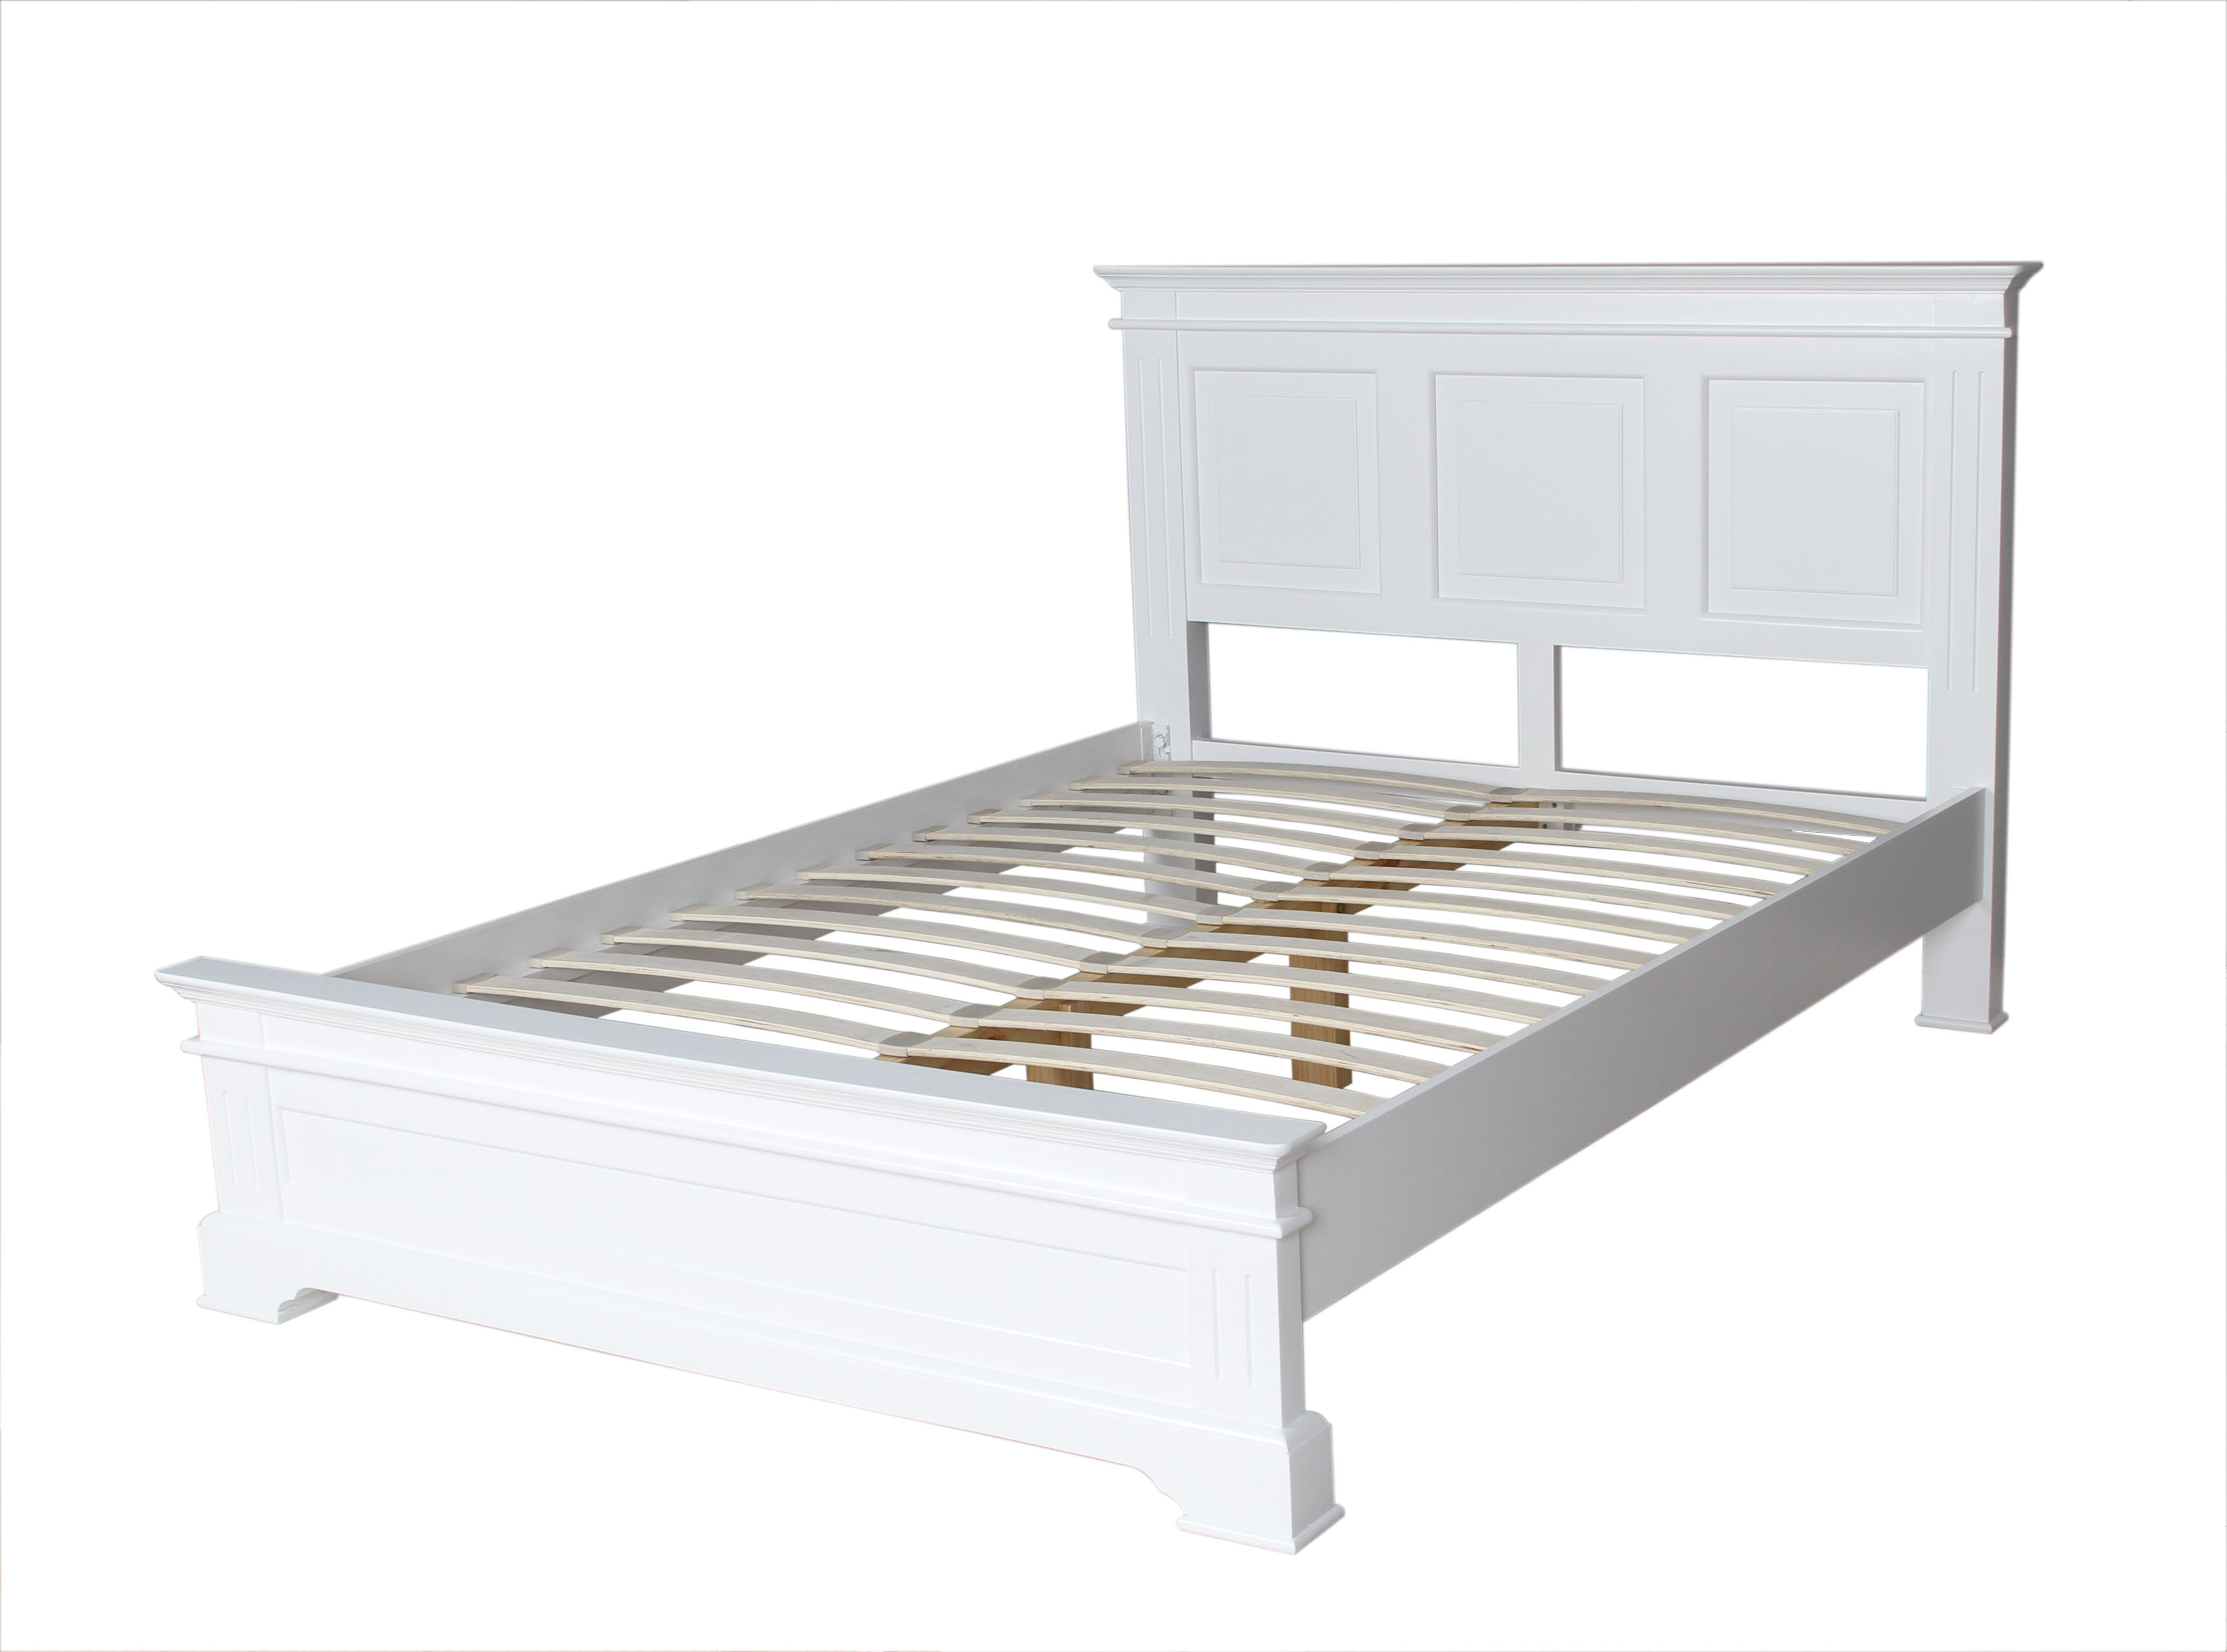 Low Bed Frames Canada Newton Bed Low End Crendon Beds And Furniturecrendon Beds